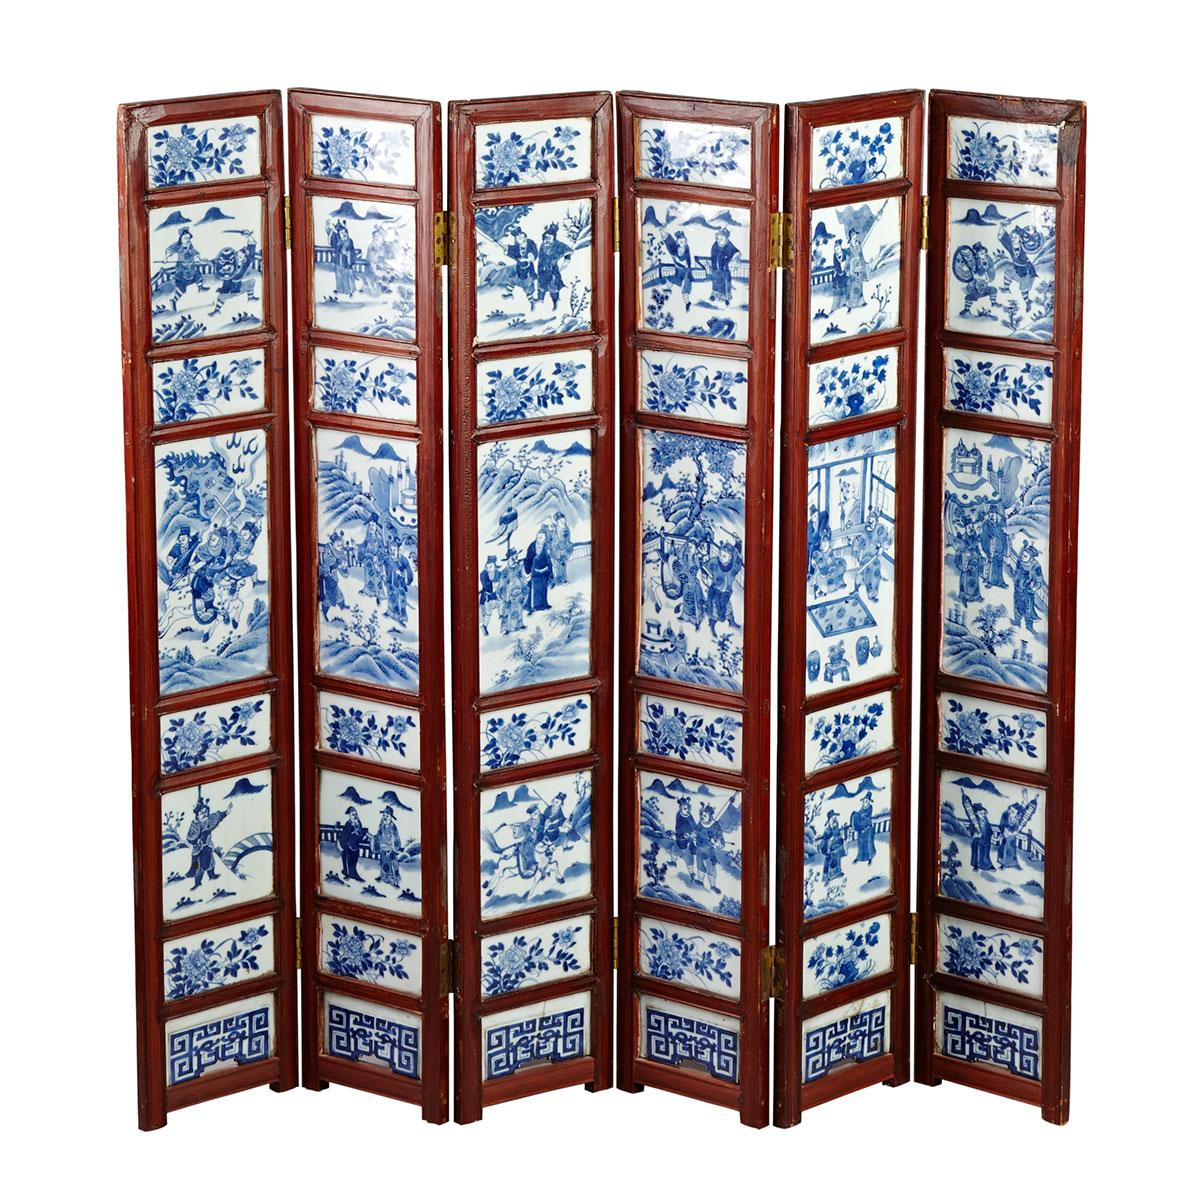 Six Panel Blue and White Porcelain Inlay Table Screen, 19th Century